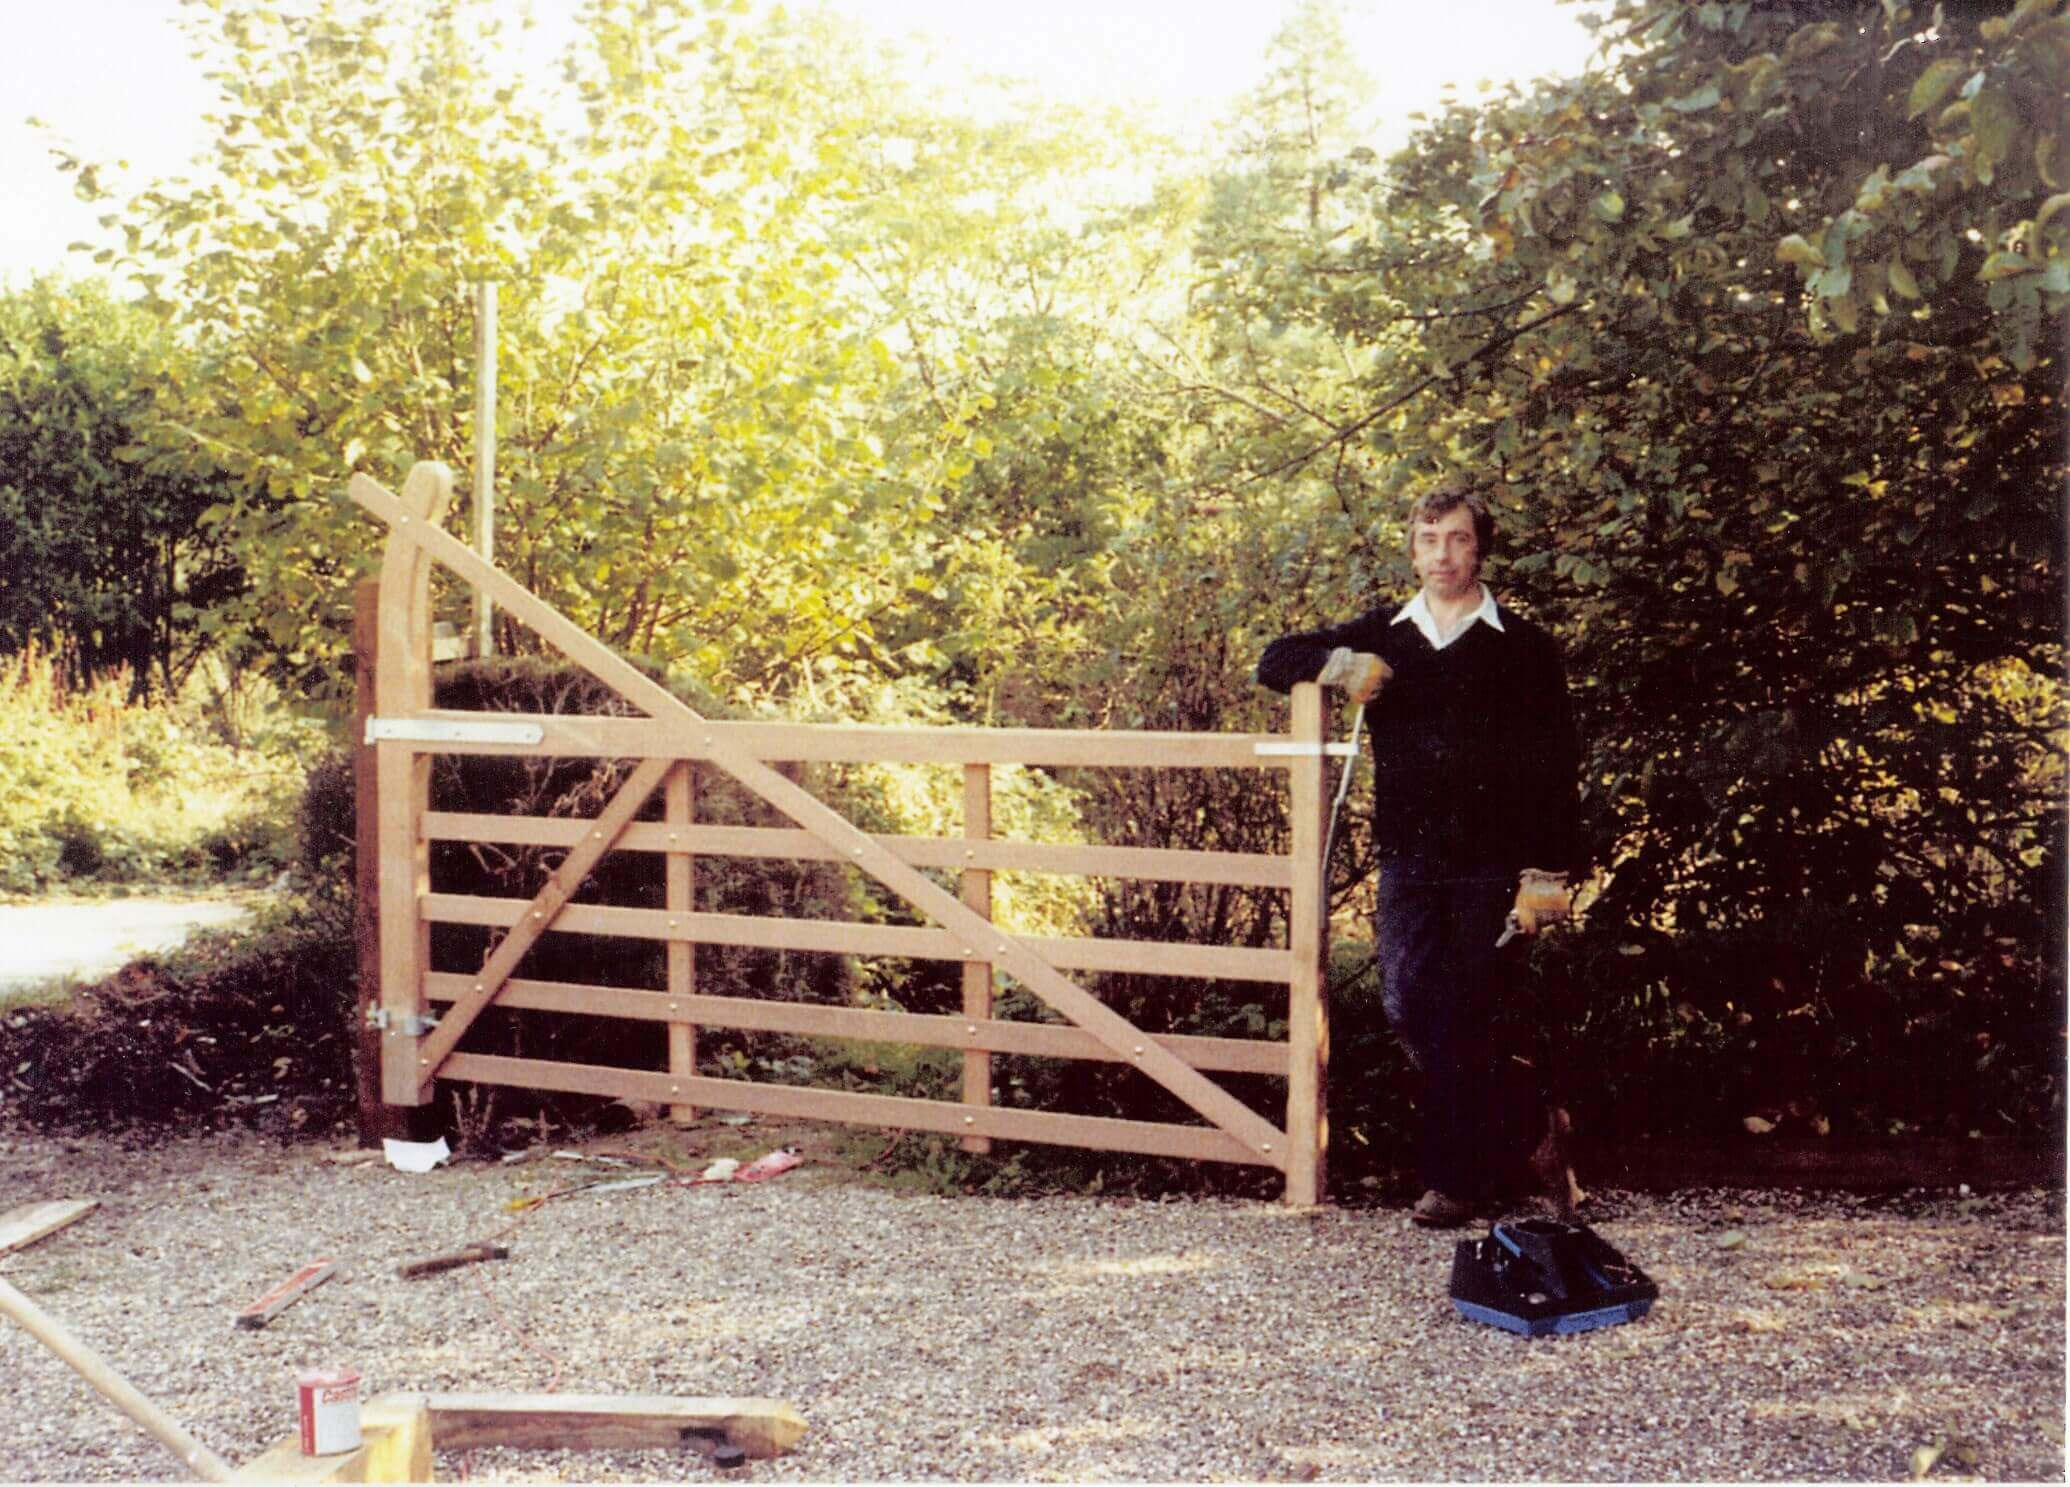 richard and old Jacksons entrance gate in 1982